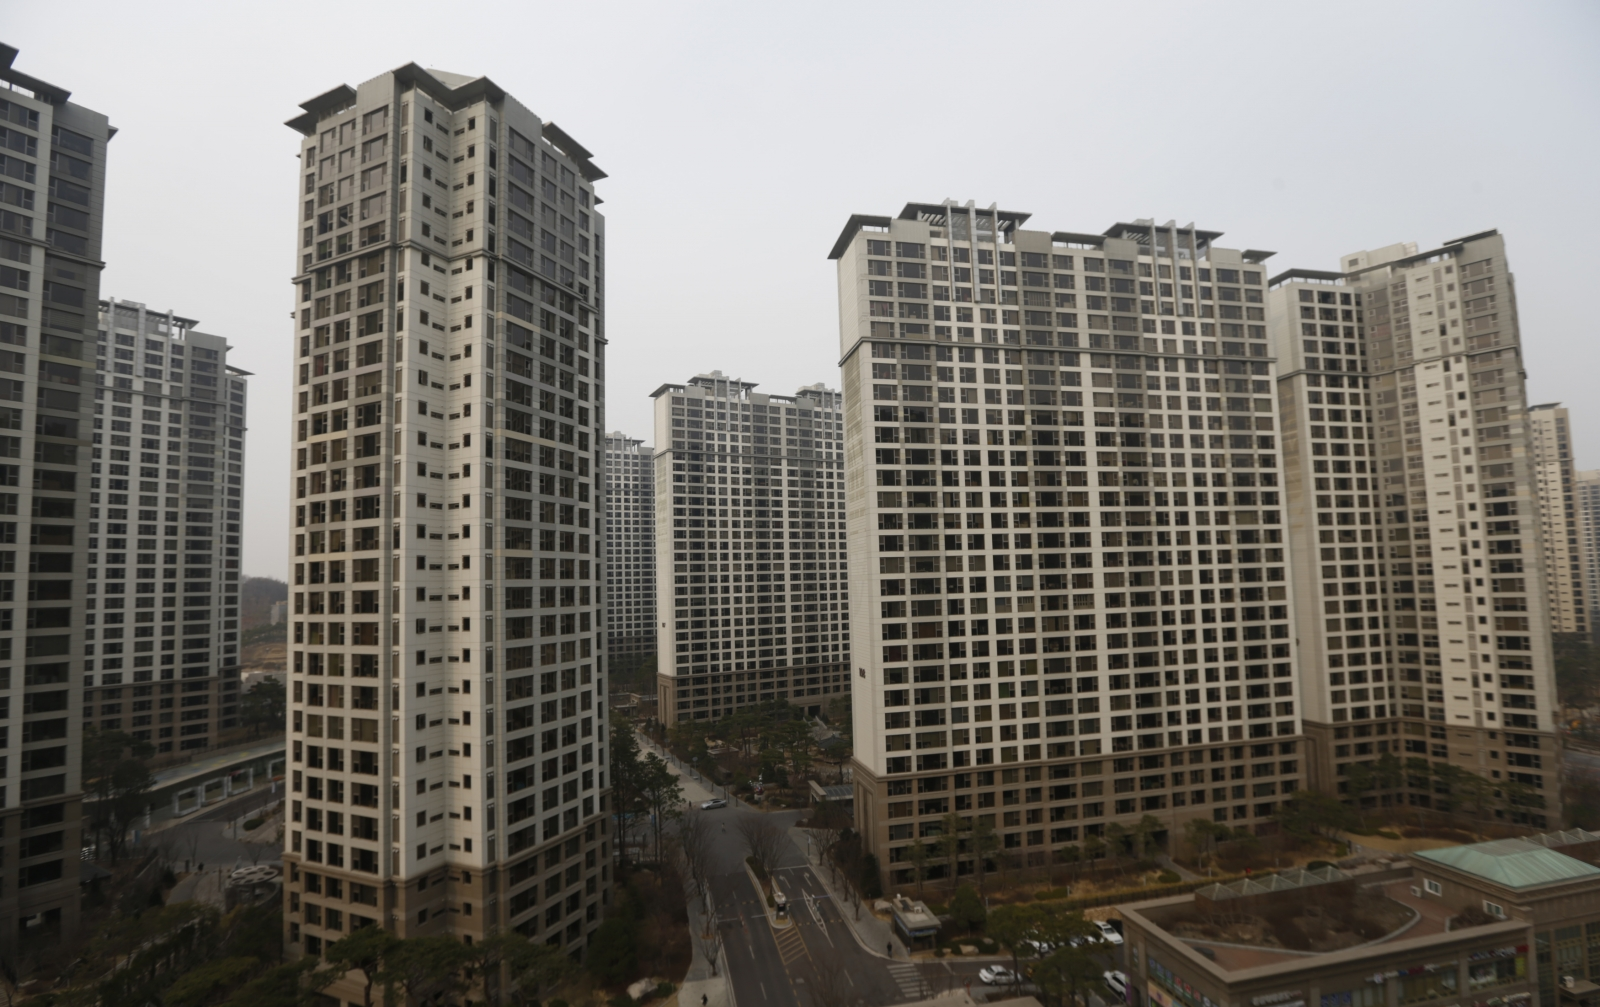 High-rise apartment buildings in Seoul, South Korea